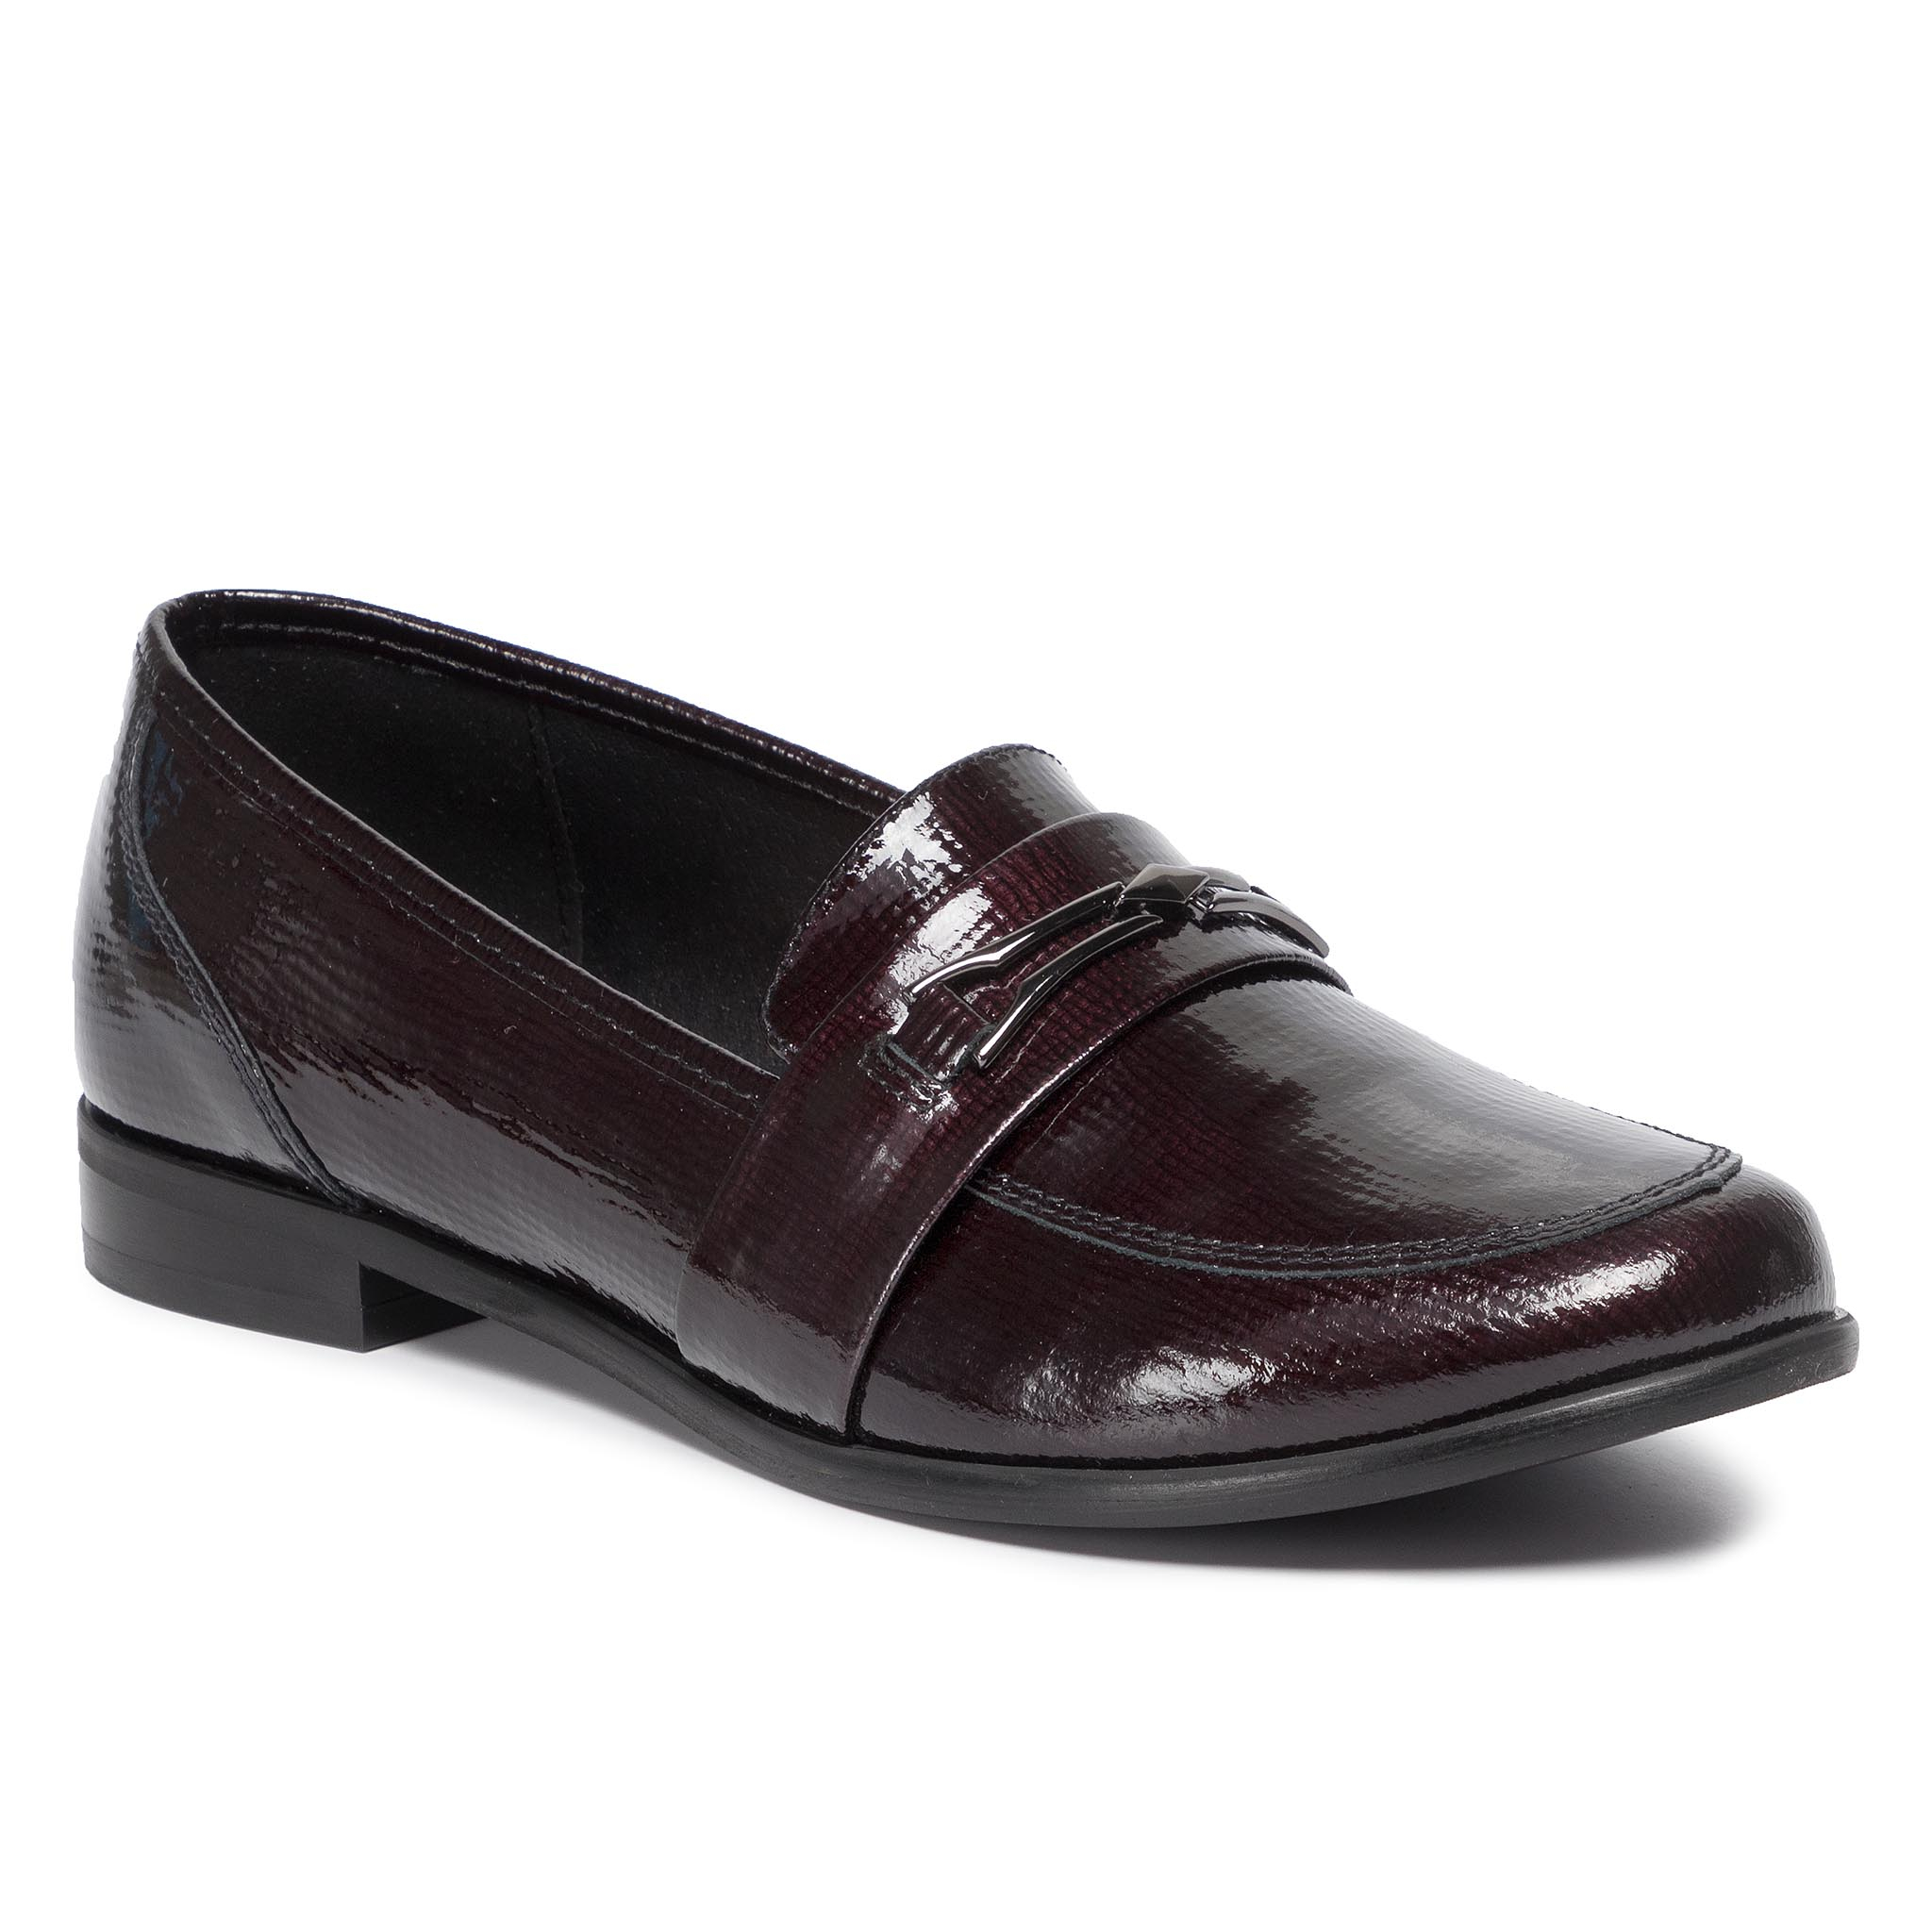 Lords GINO ROSSI - 2553-12 Maroon